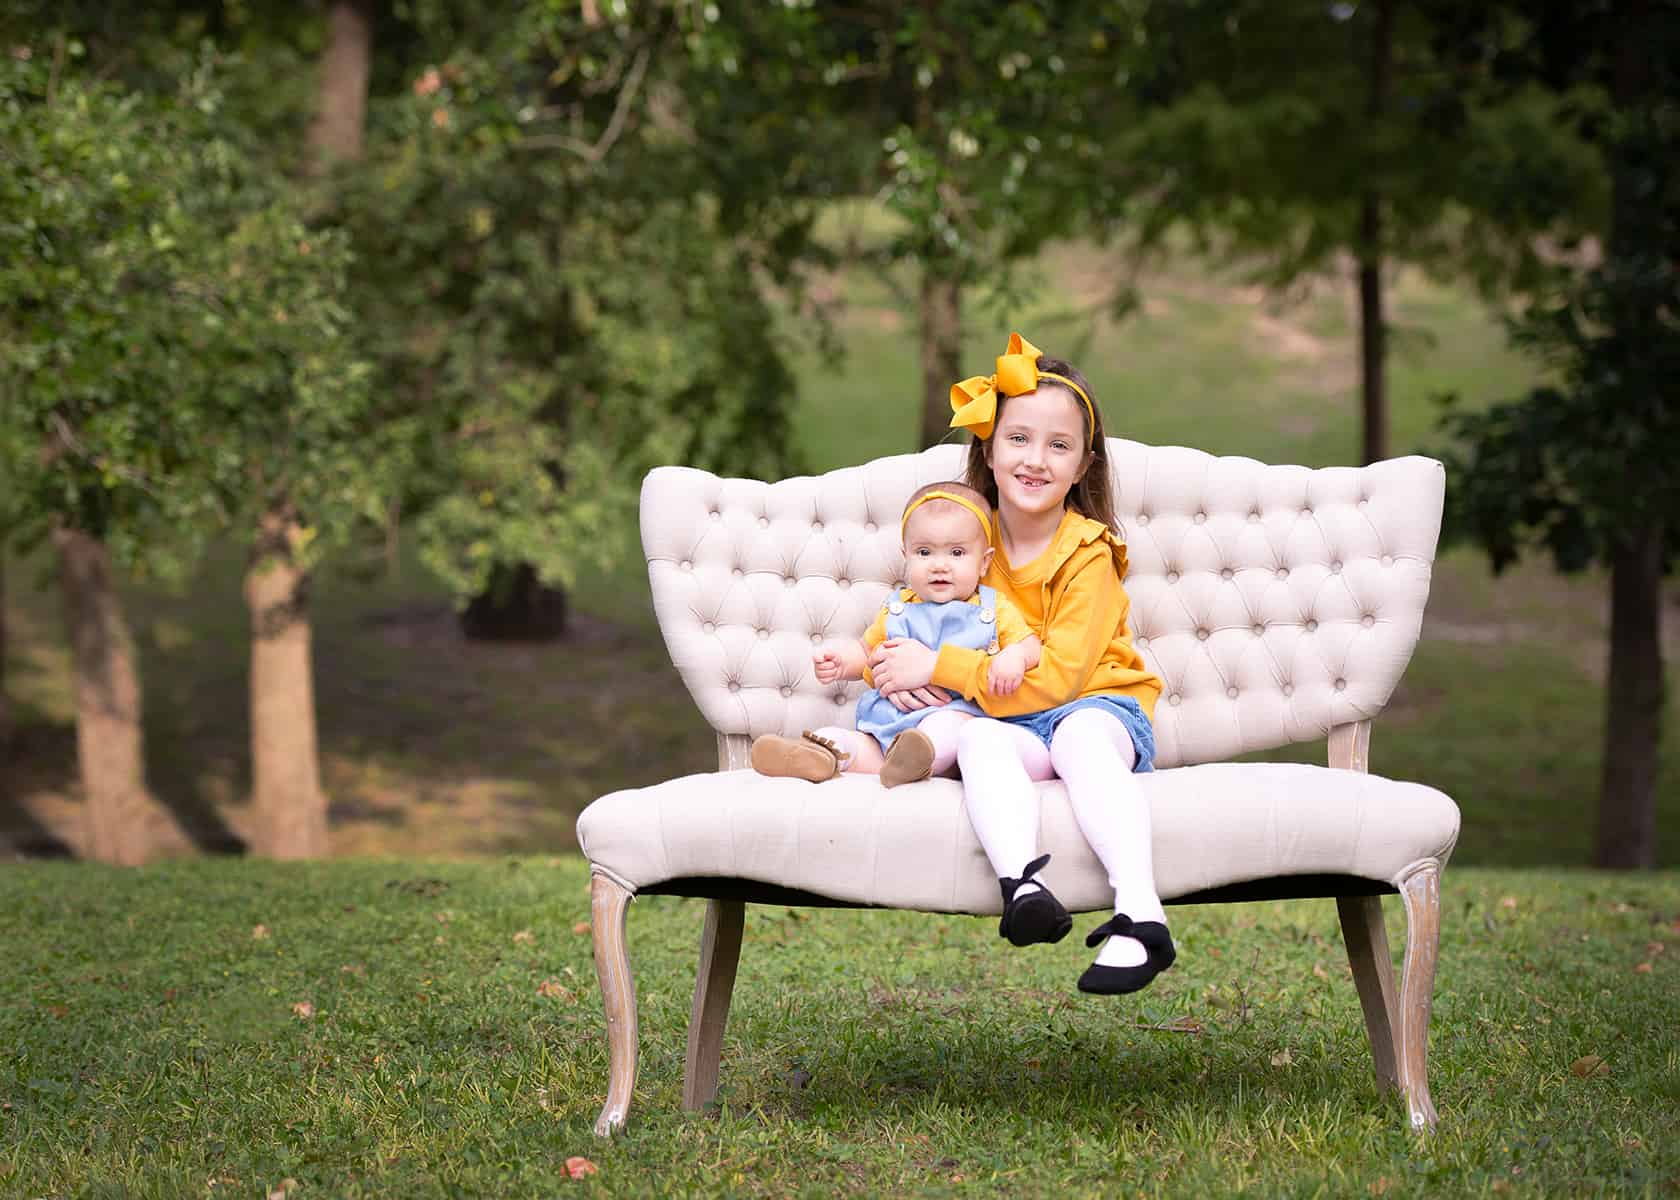 Sisters on a couch in the park wearing yellow for photoshoot